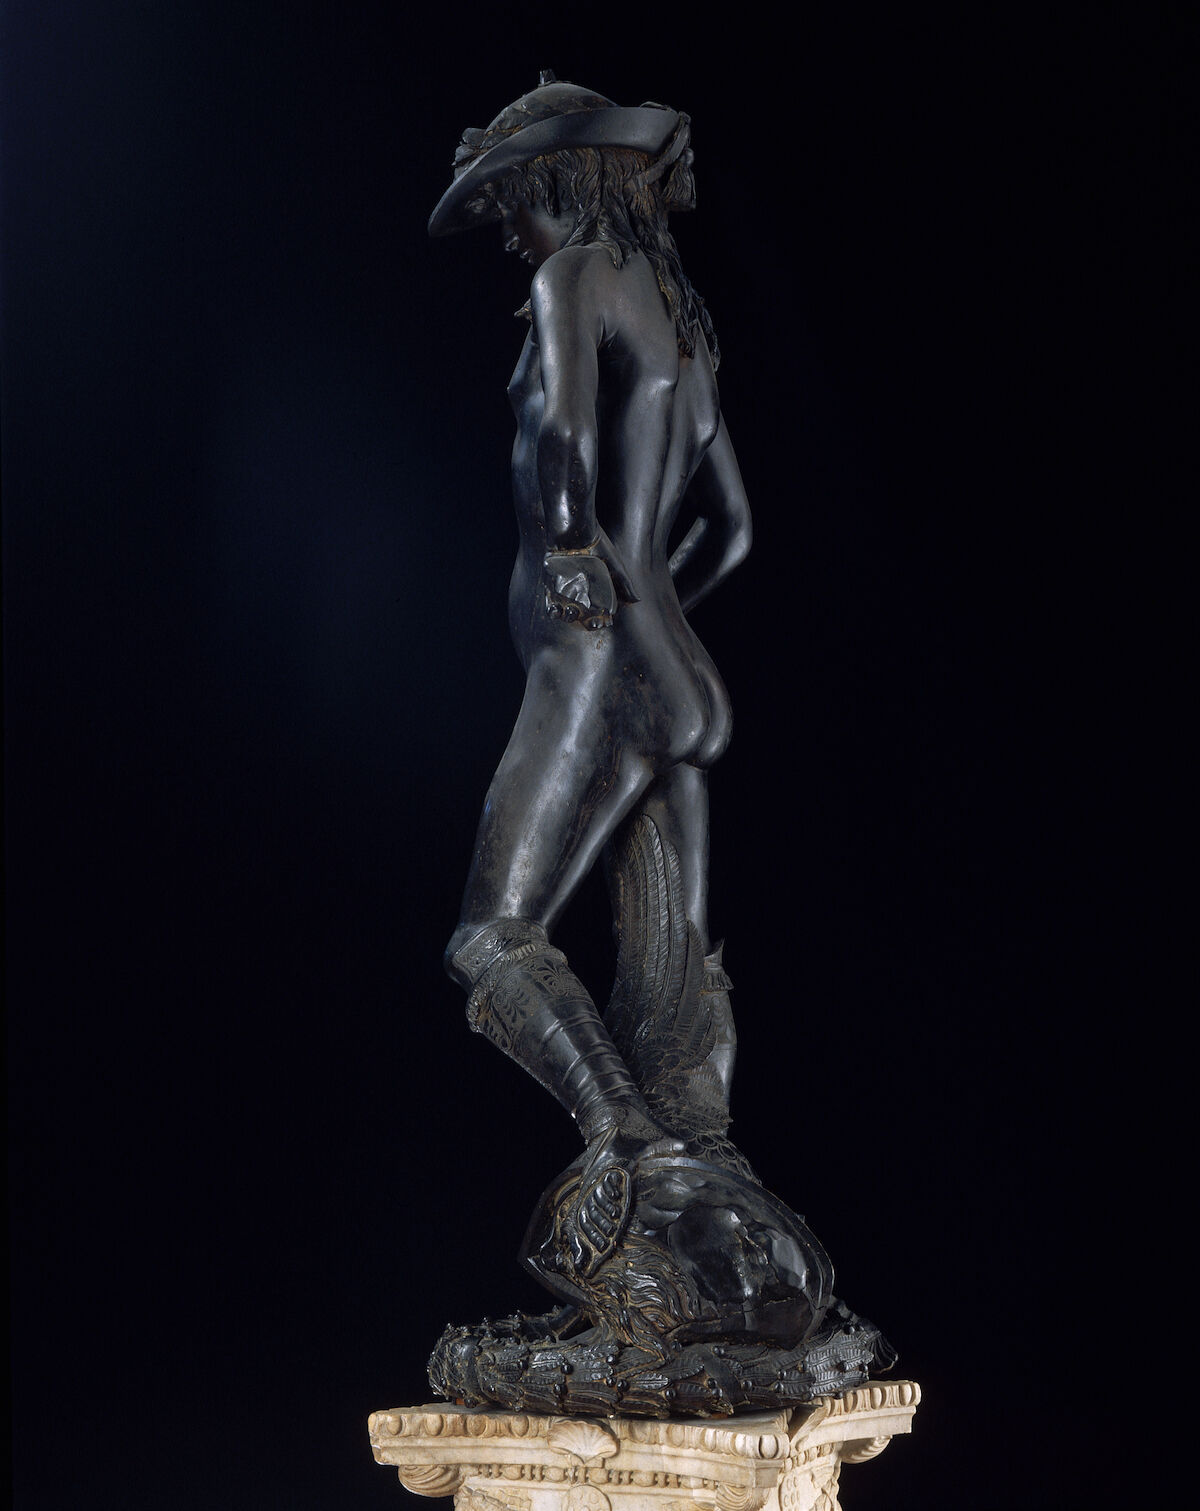 Donatello, David, 1428–1432. Photo © Arte & Immagini srl/CORBIS/Corbis via Getty Images.